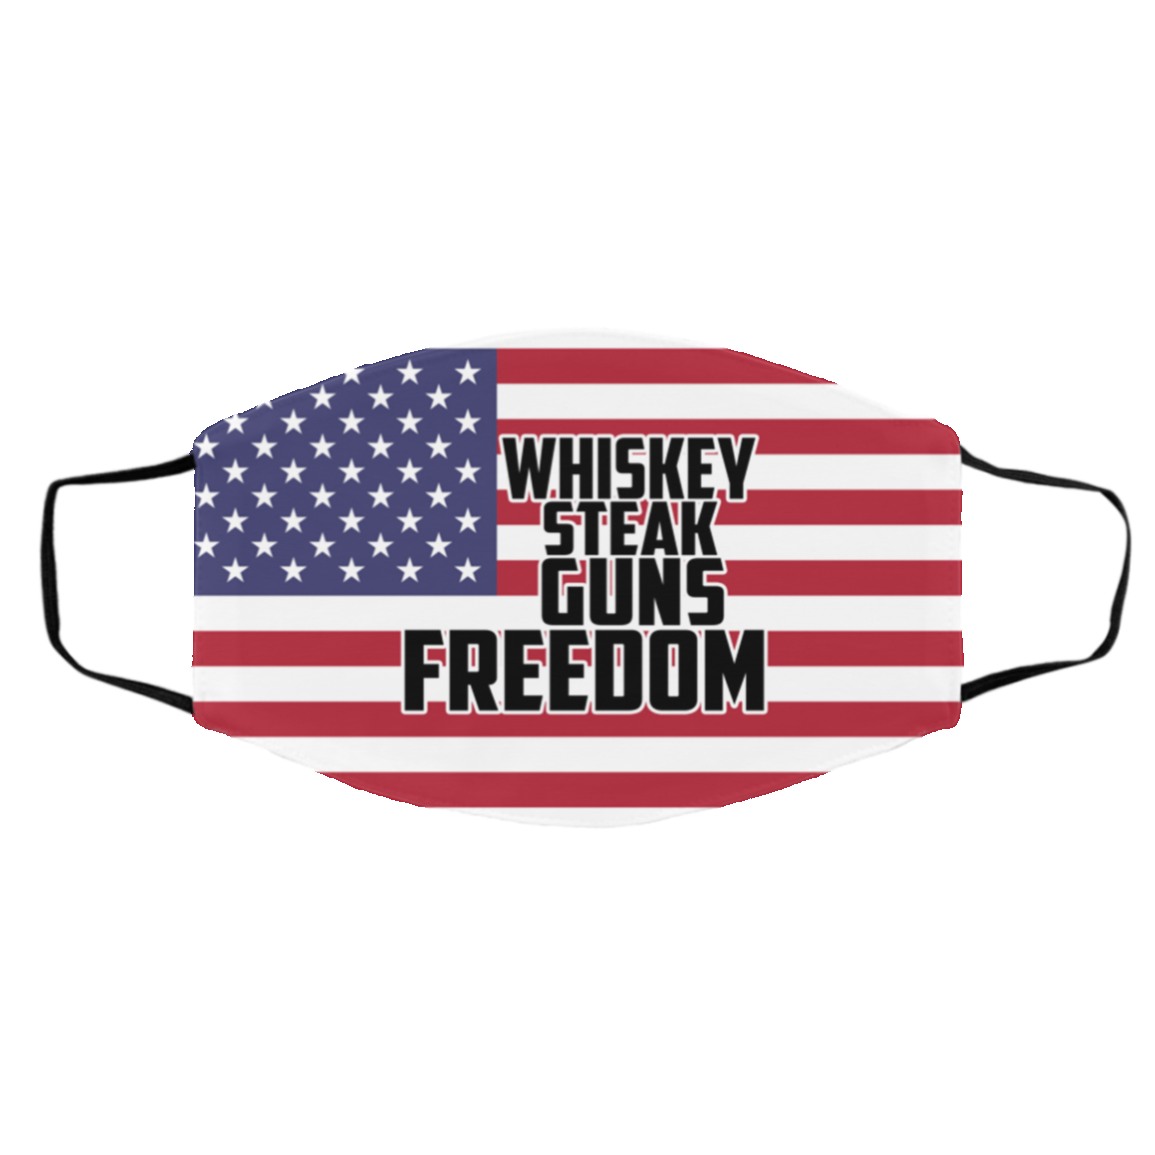 Whiskey Steak Guns And Freedom Washable Reusable Custom Printed Cloth Face Mask Cover, White, Cloth Face Cover – Medium/Large